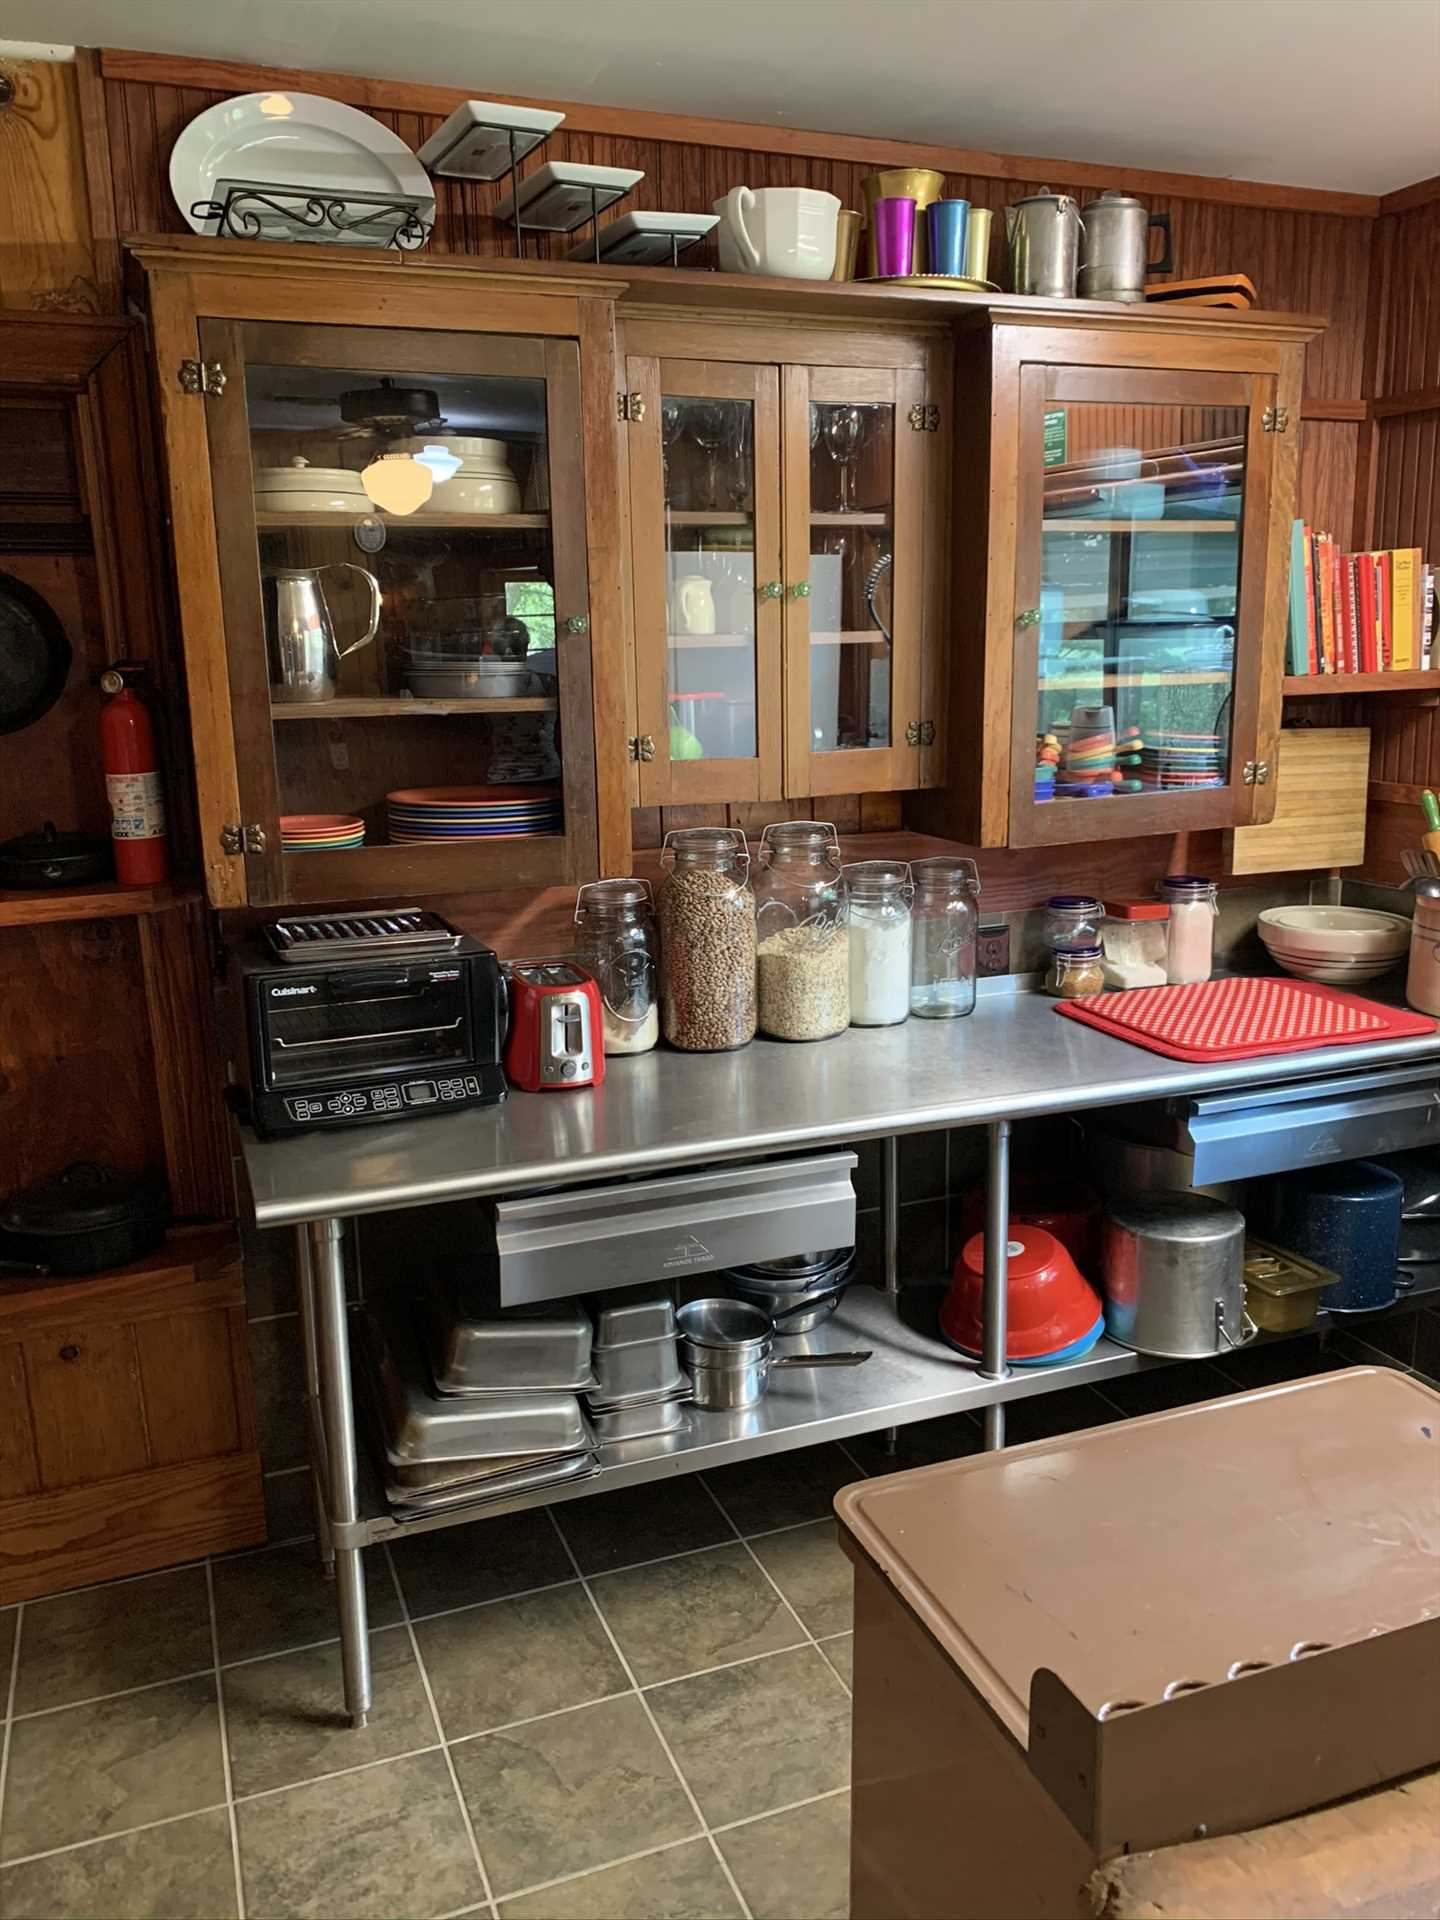 Tons of cookware, serving ware, utensils, and glasses are stocked in the kitchen for worry-free meal preparation.